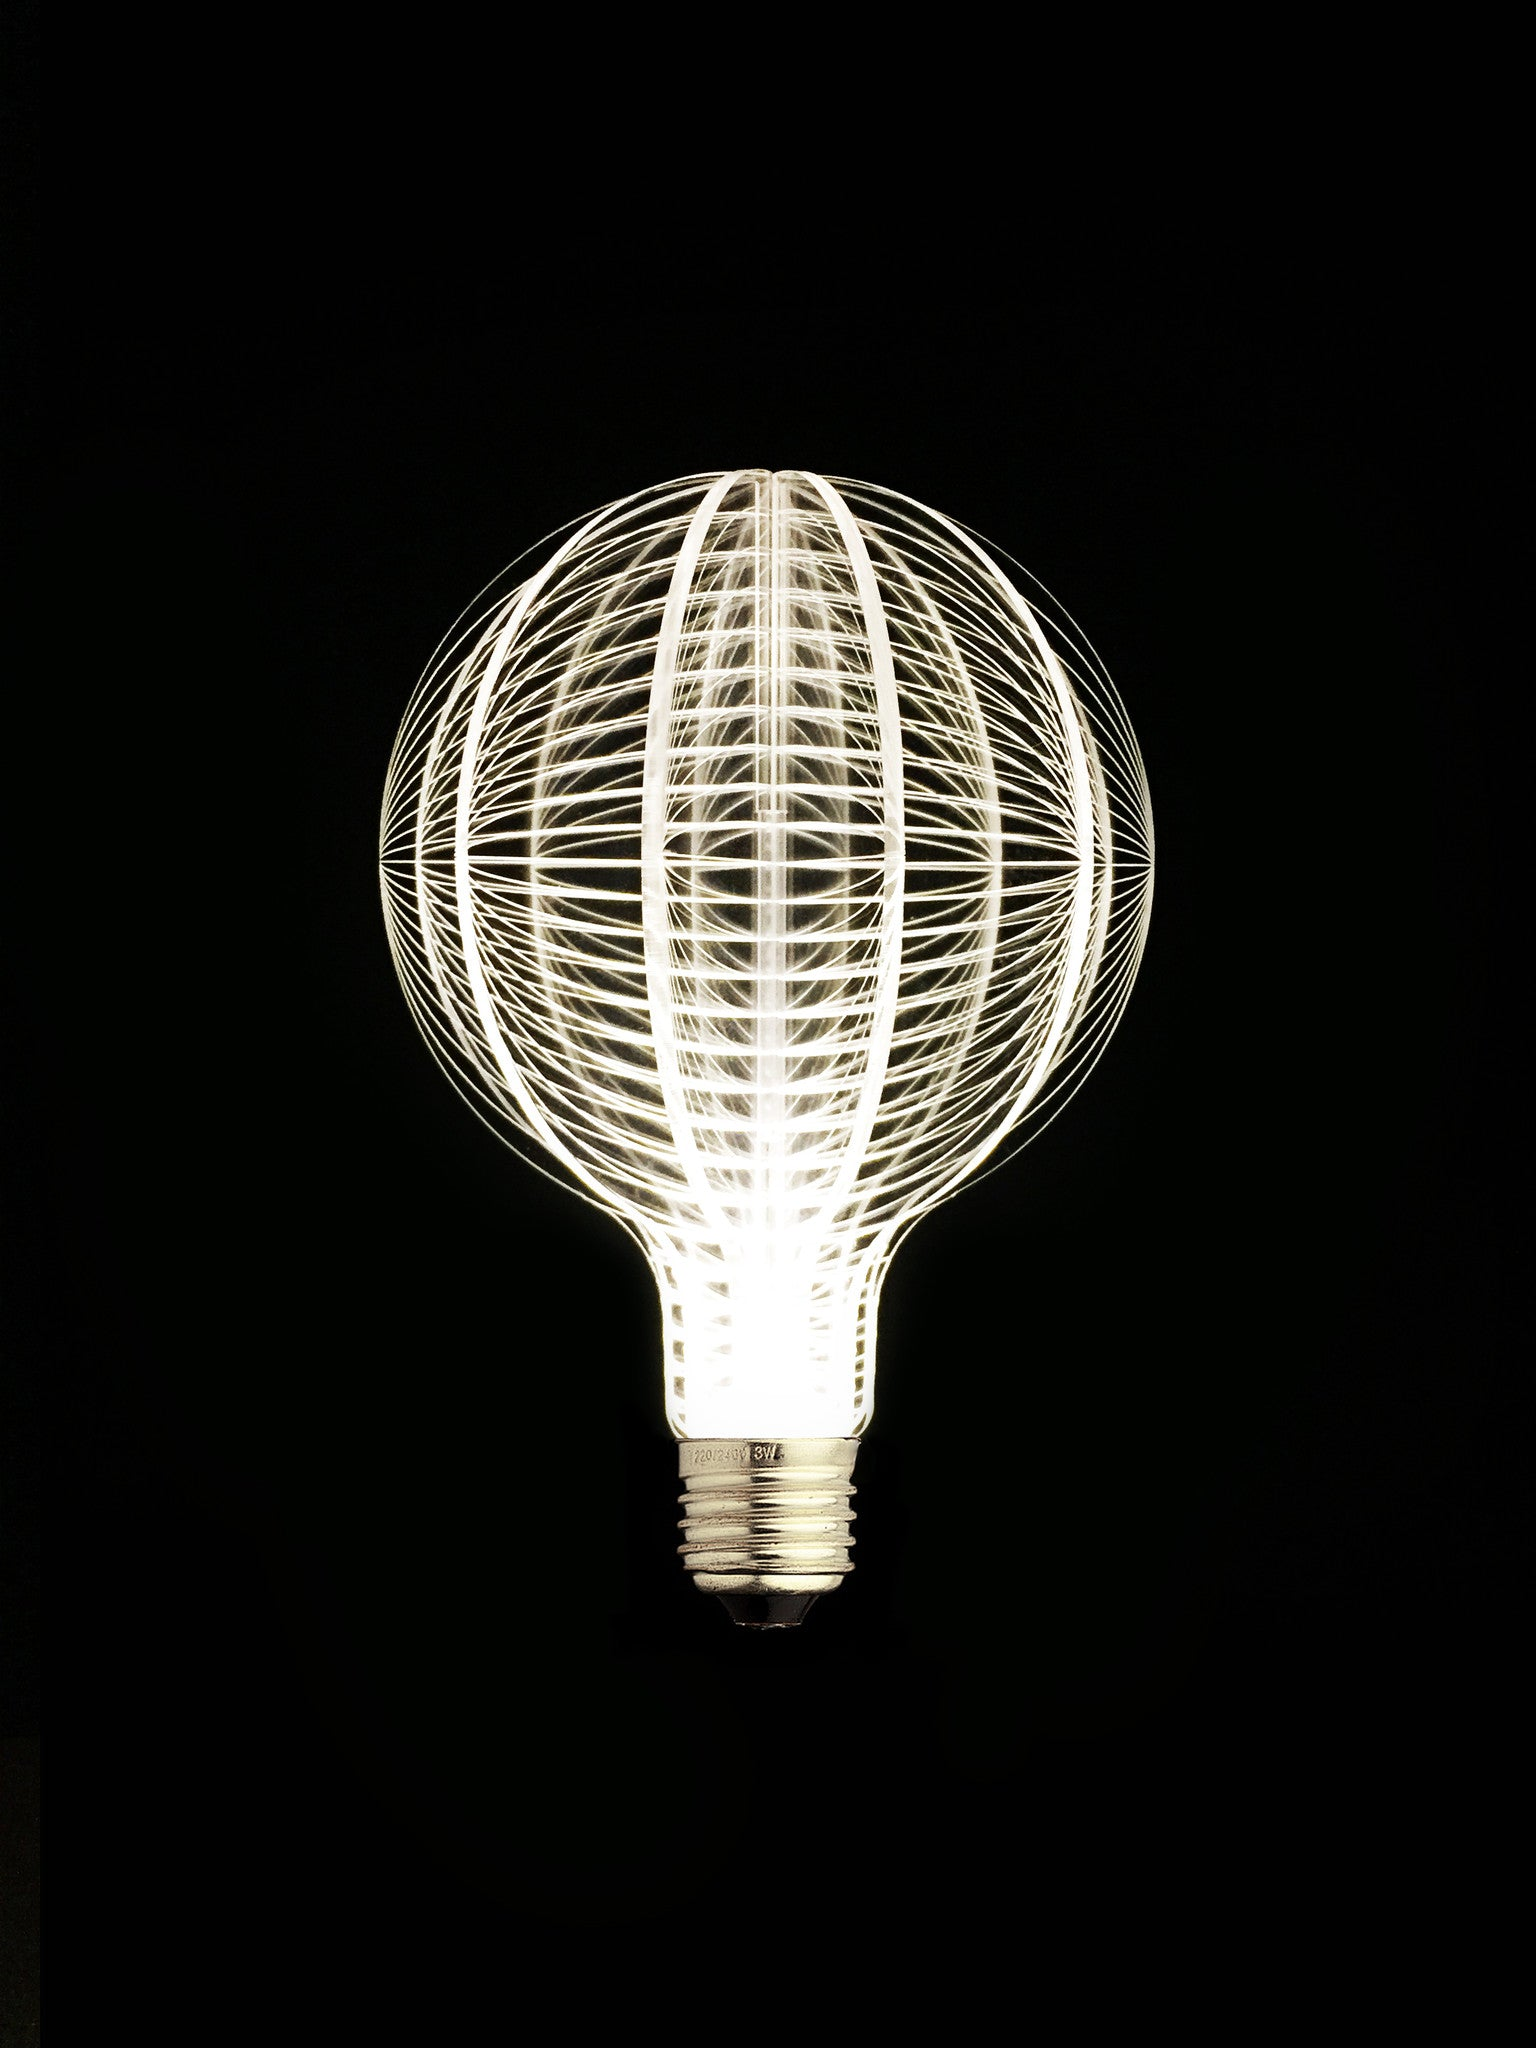 JUPITER . CLASSIC LIGHTING BULBS . DESIGN 1 + 1 . HONG KONG DESIGNER